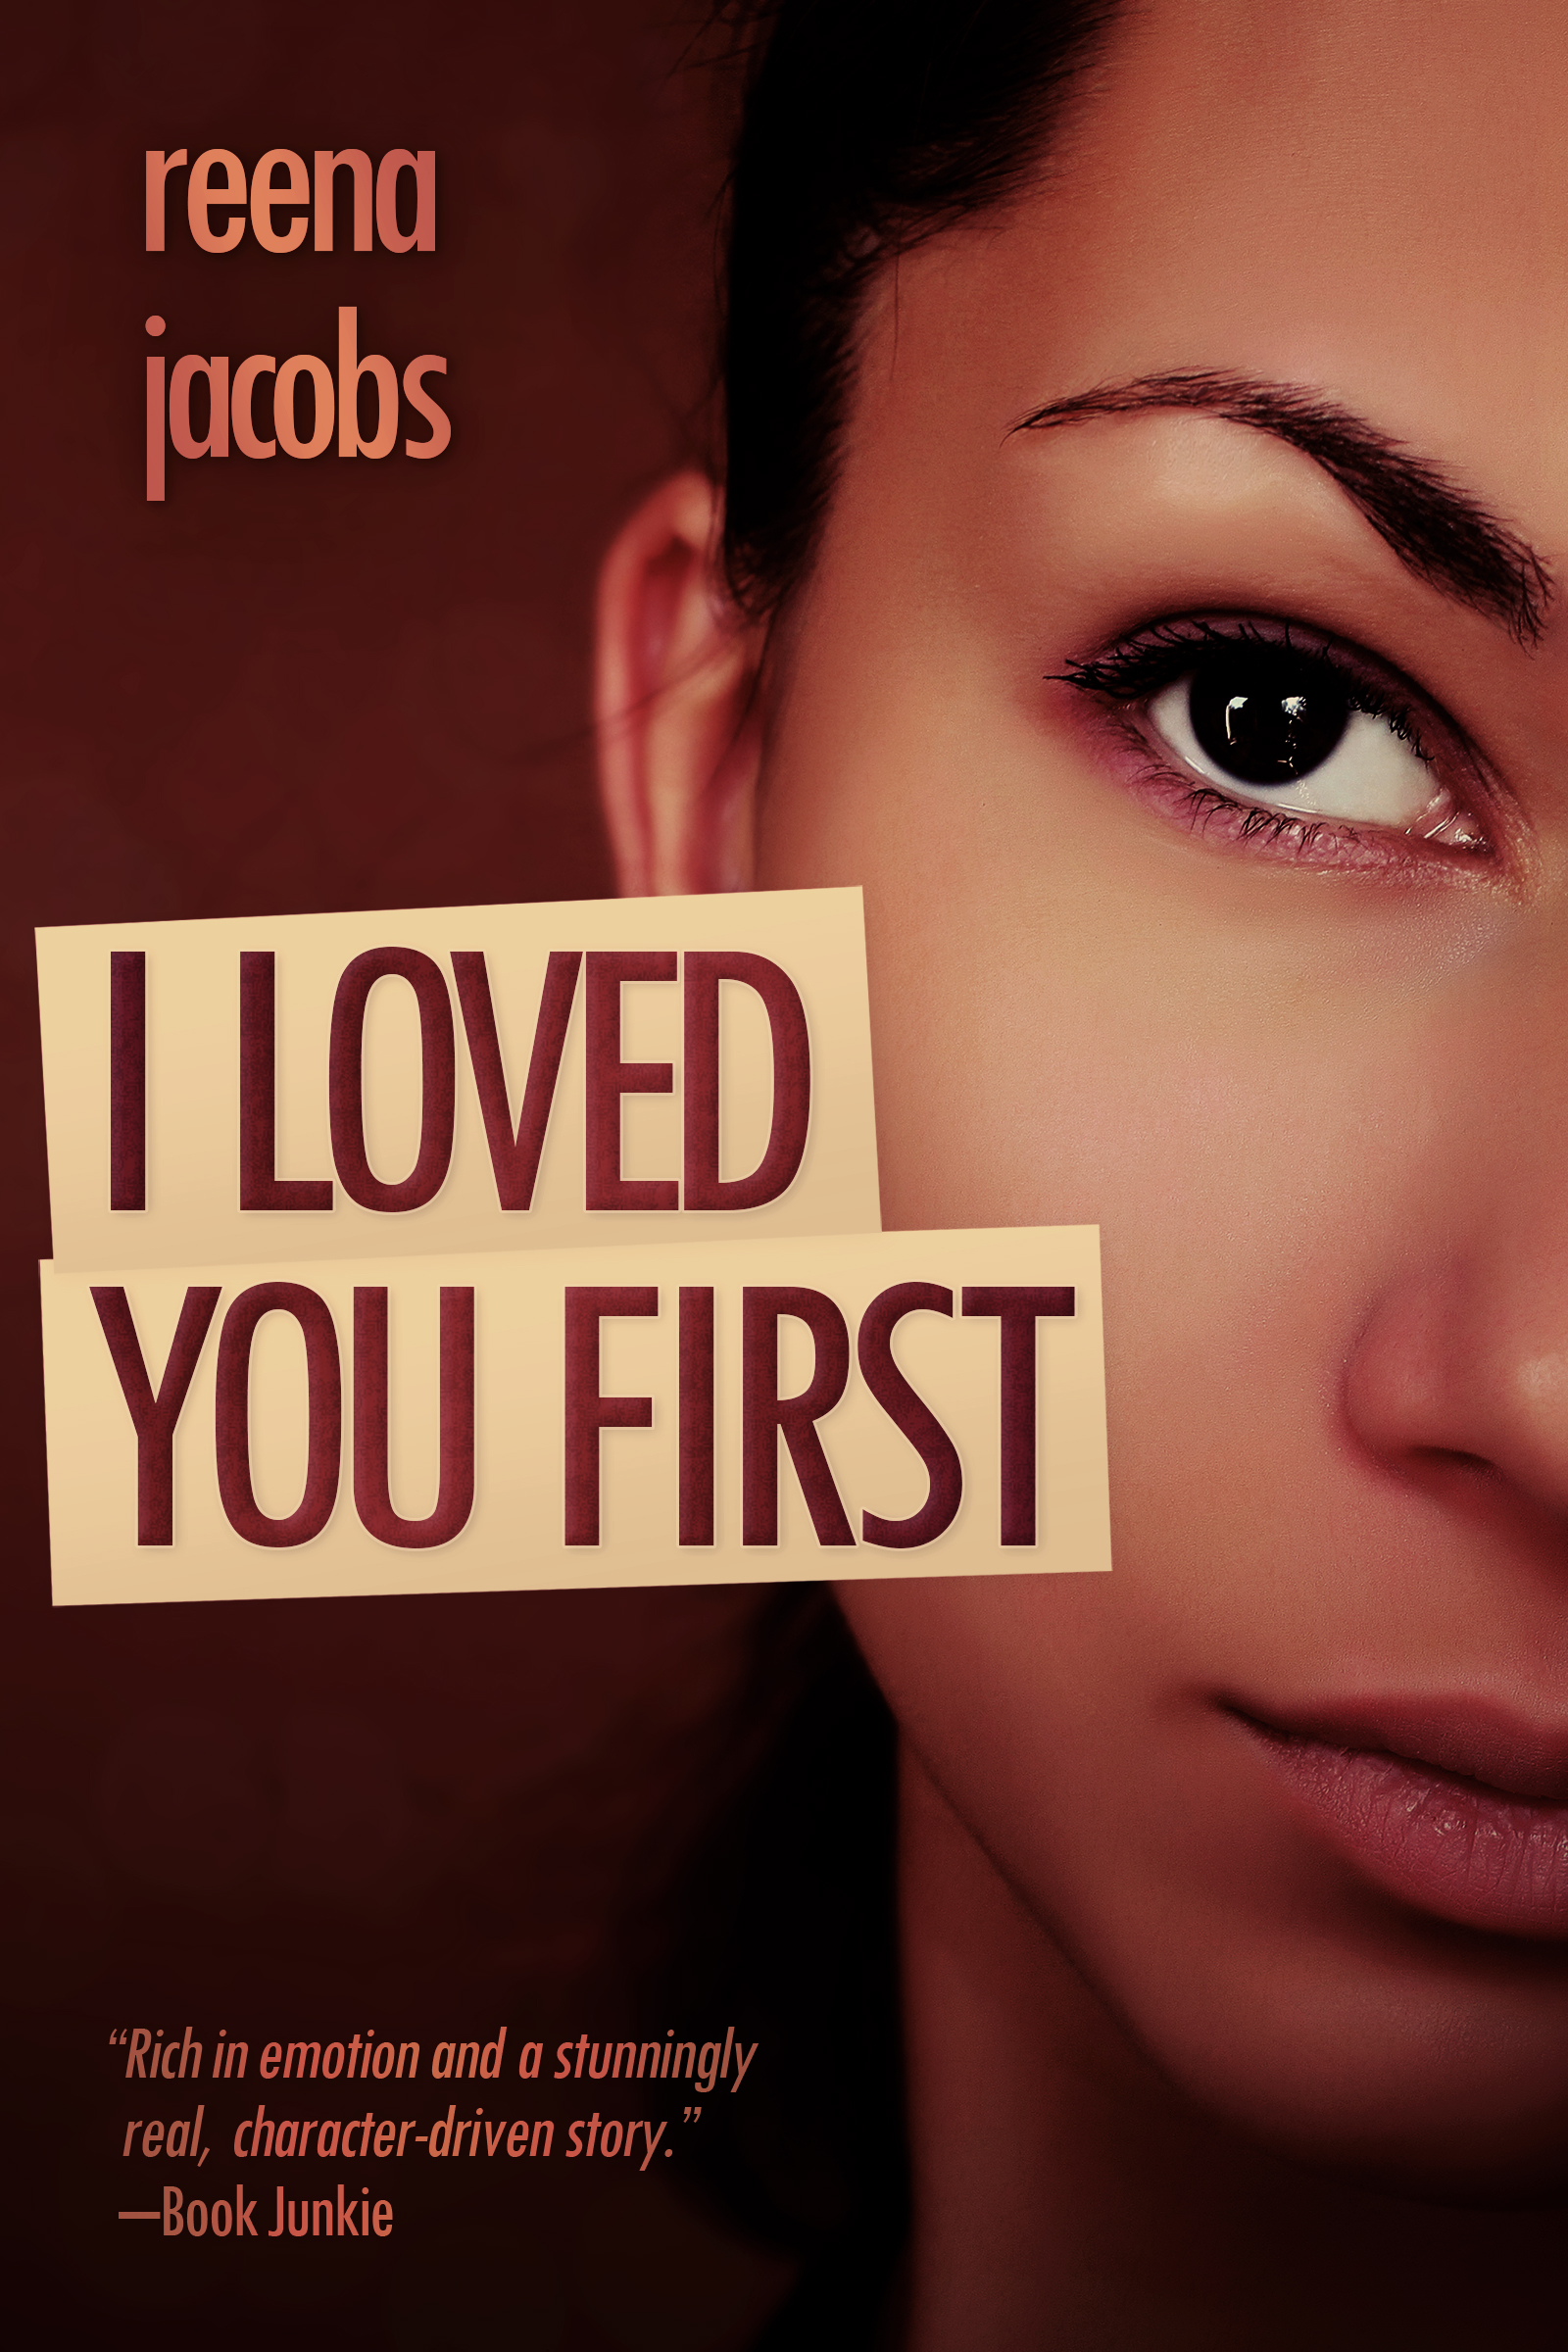 new adult new cover reena jacobs author of erotic books